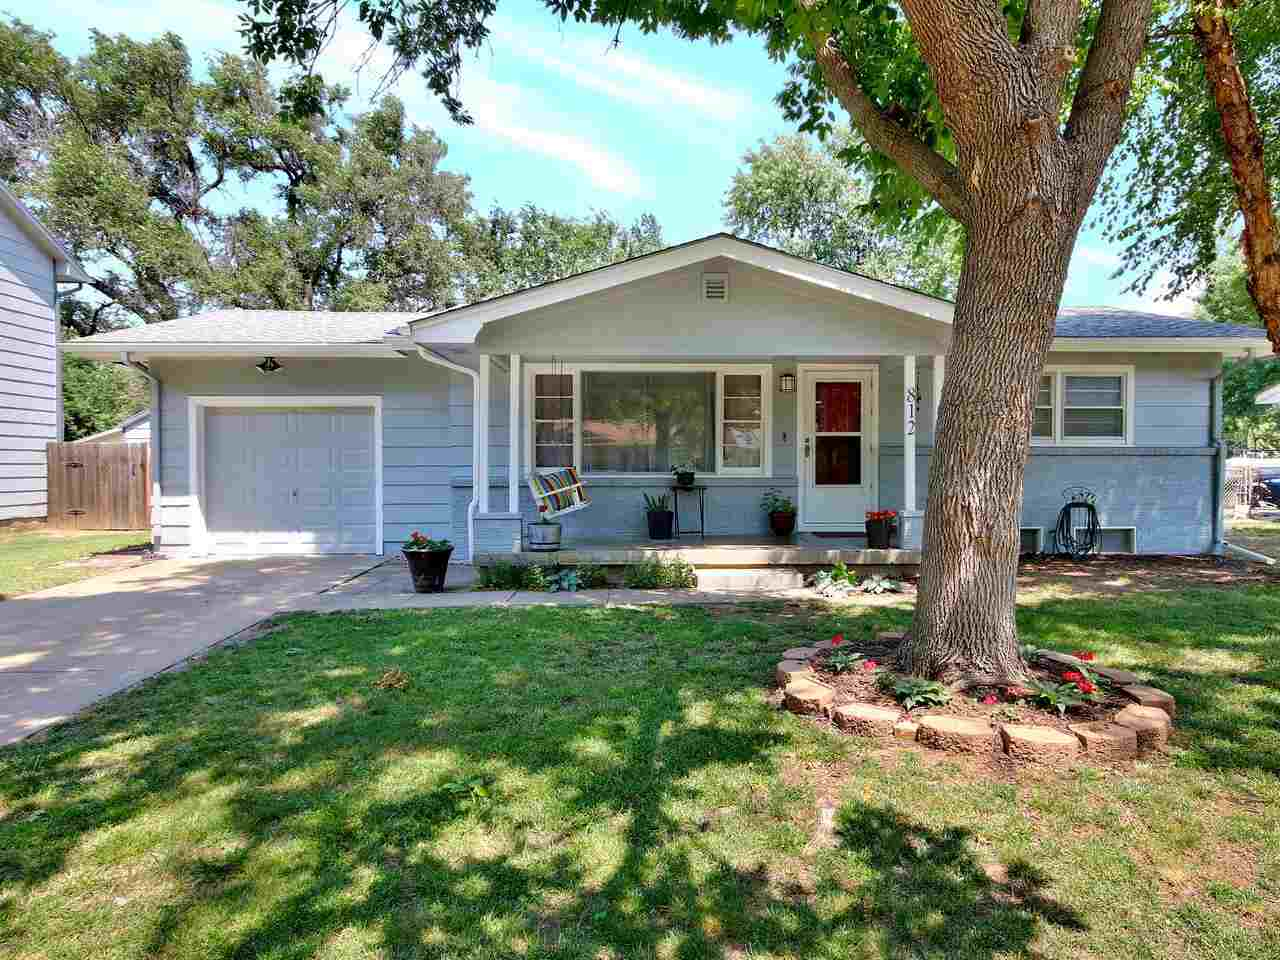 Schedule your showing to see this spacious 2 - bedroom, 2 bath home that features a full basement an